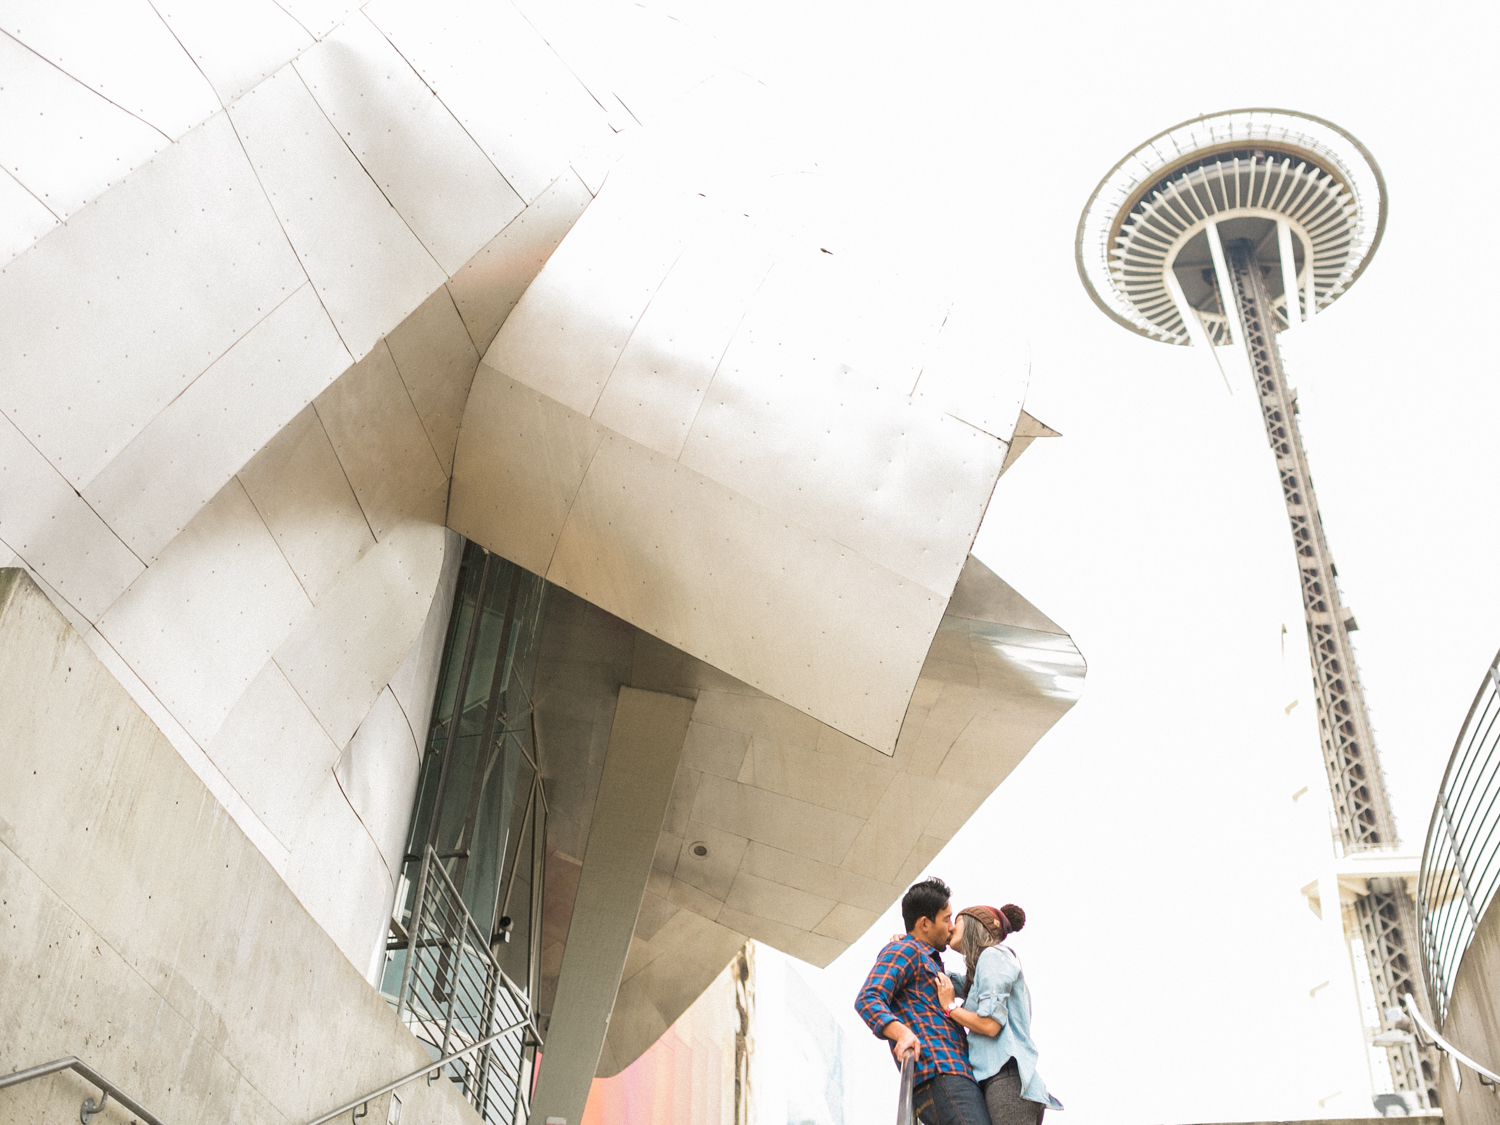 Seattle_space_needle_Dallas_destination_engagement_session.jpg